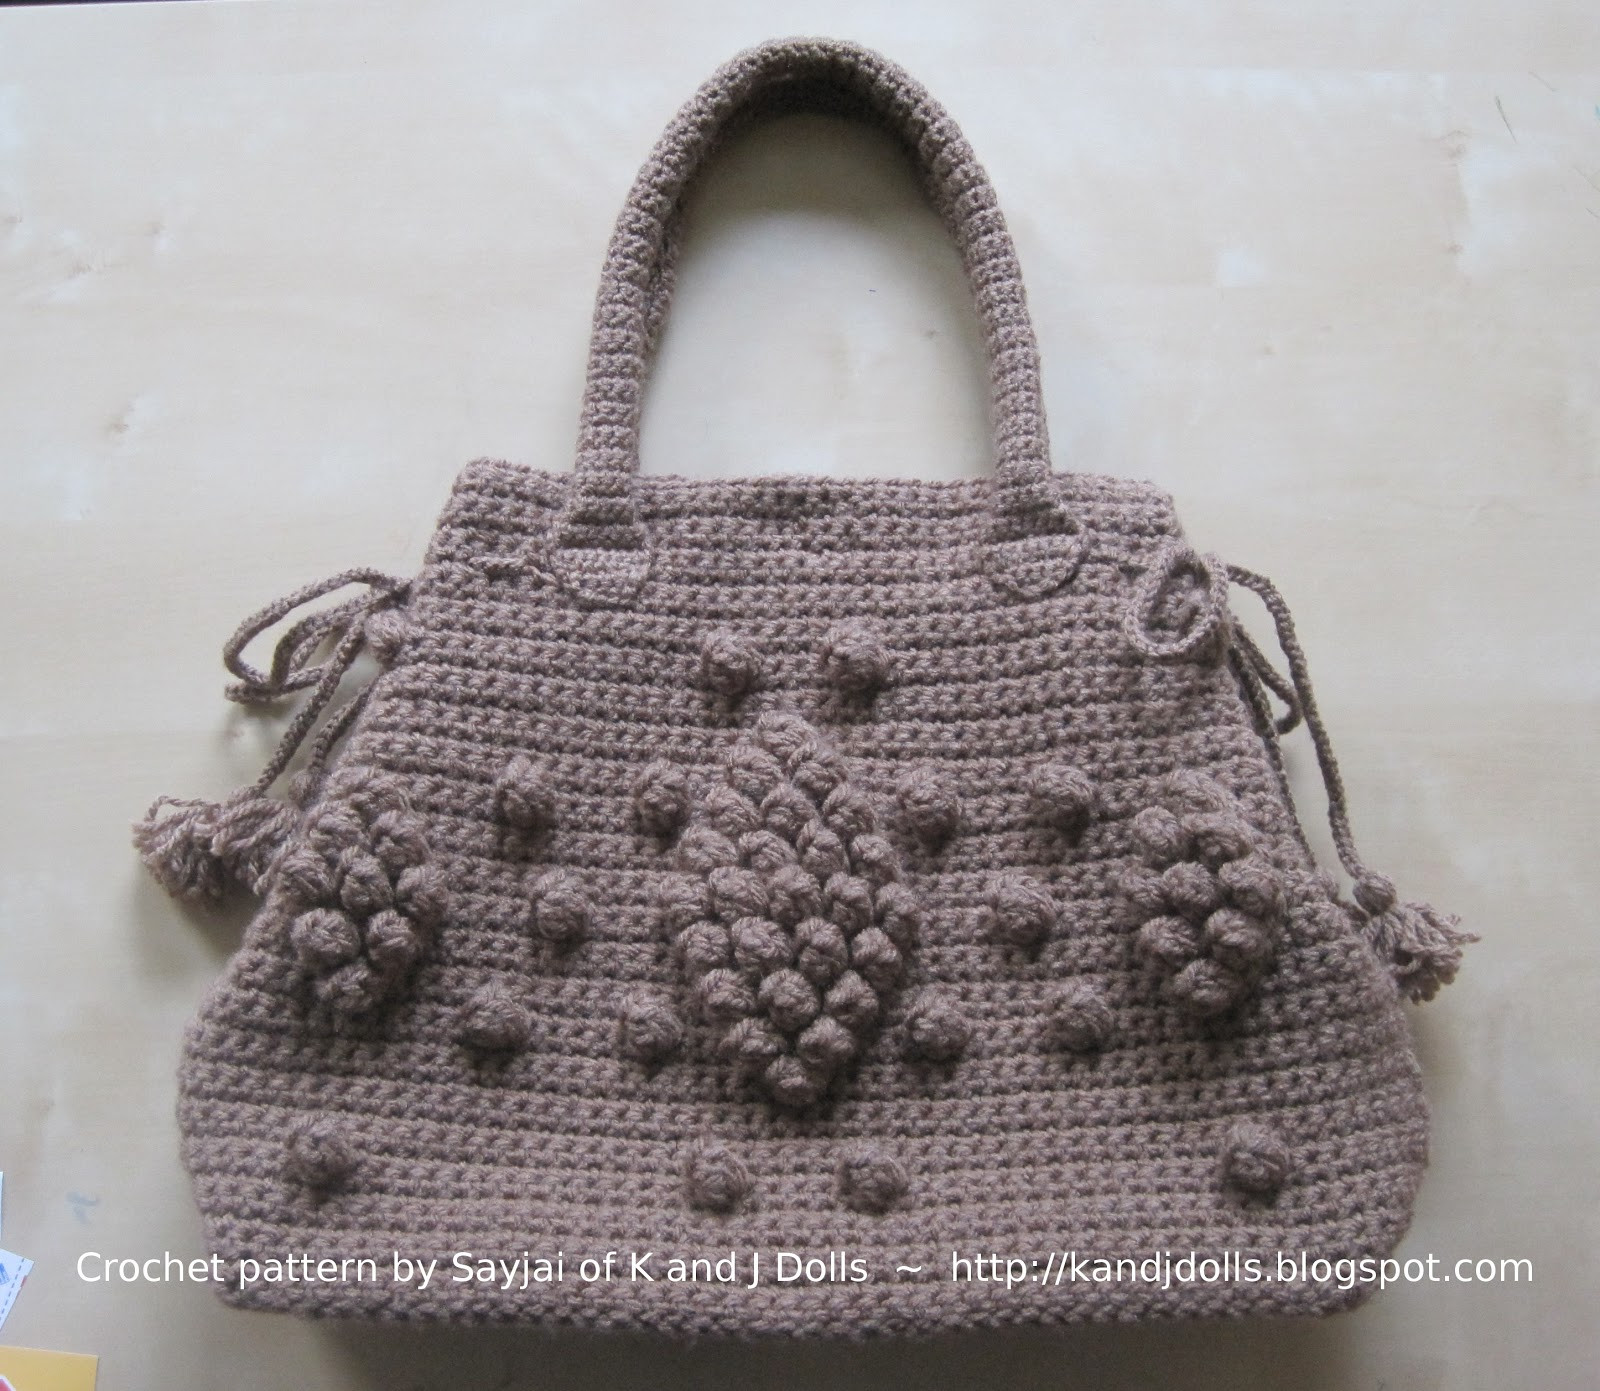 Free Crochet Bag Patterns Beautiful Taupe Bag Crochet Pattern Sayjai Amigurumi Crochet Of Awesome 45 Ideas Free Crochet Bag Patterns